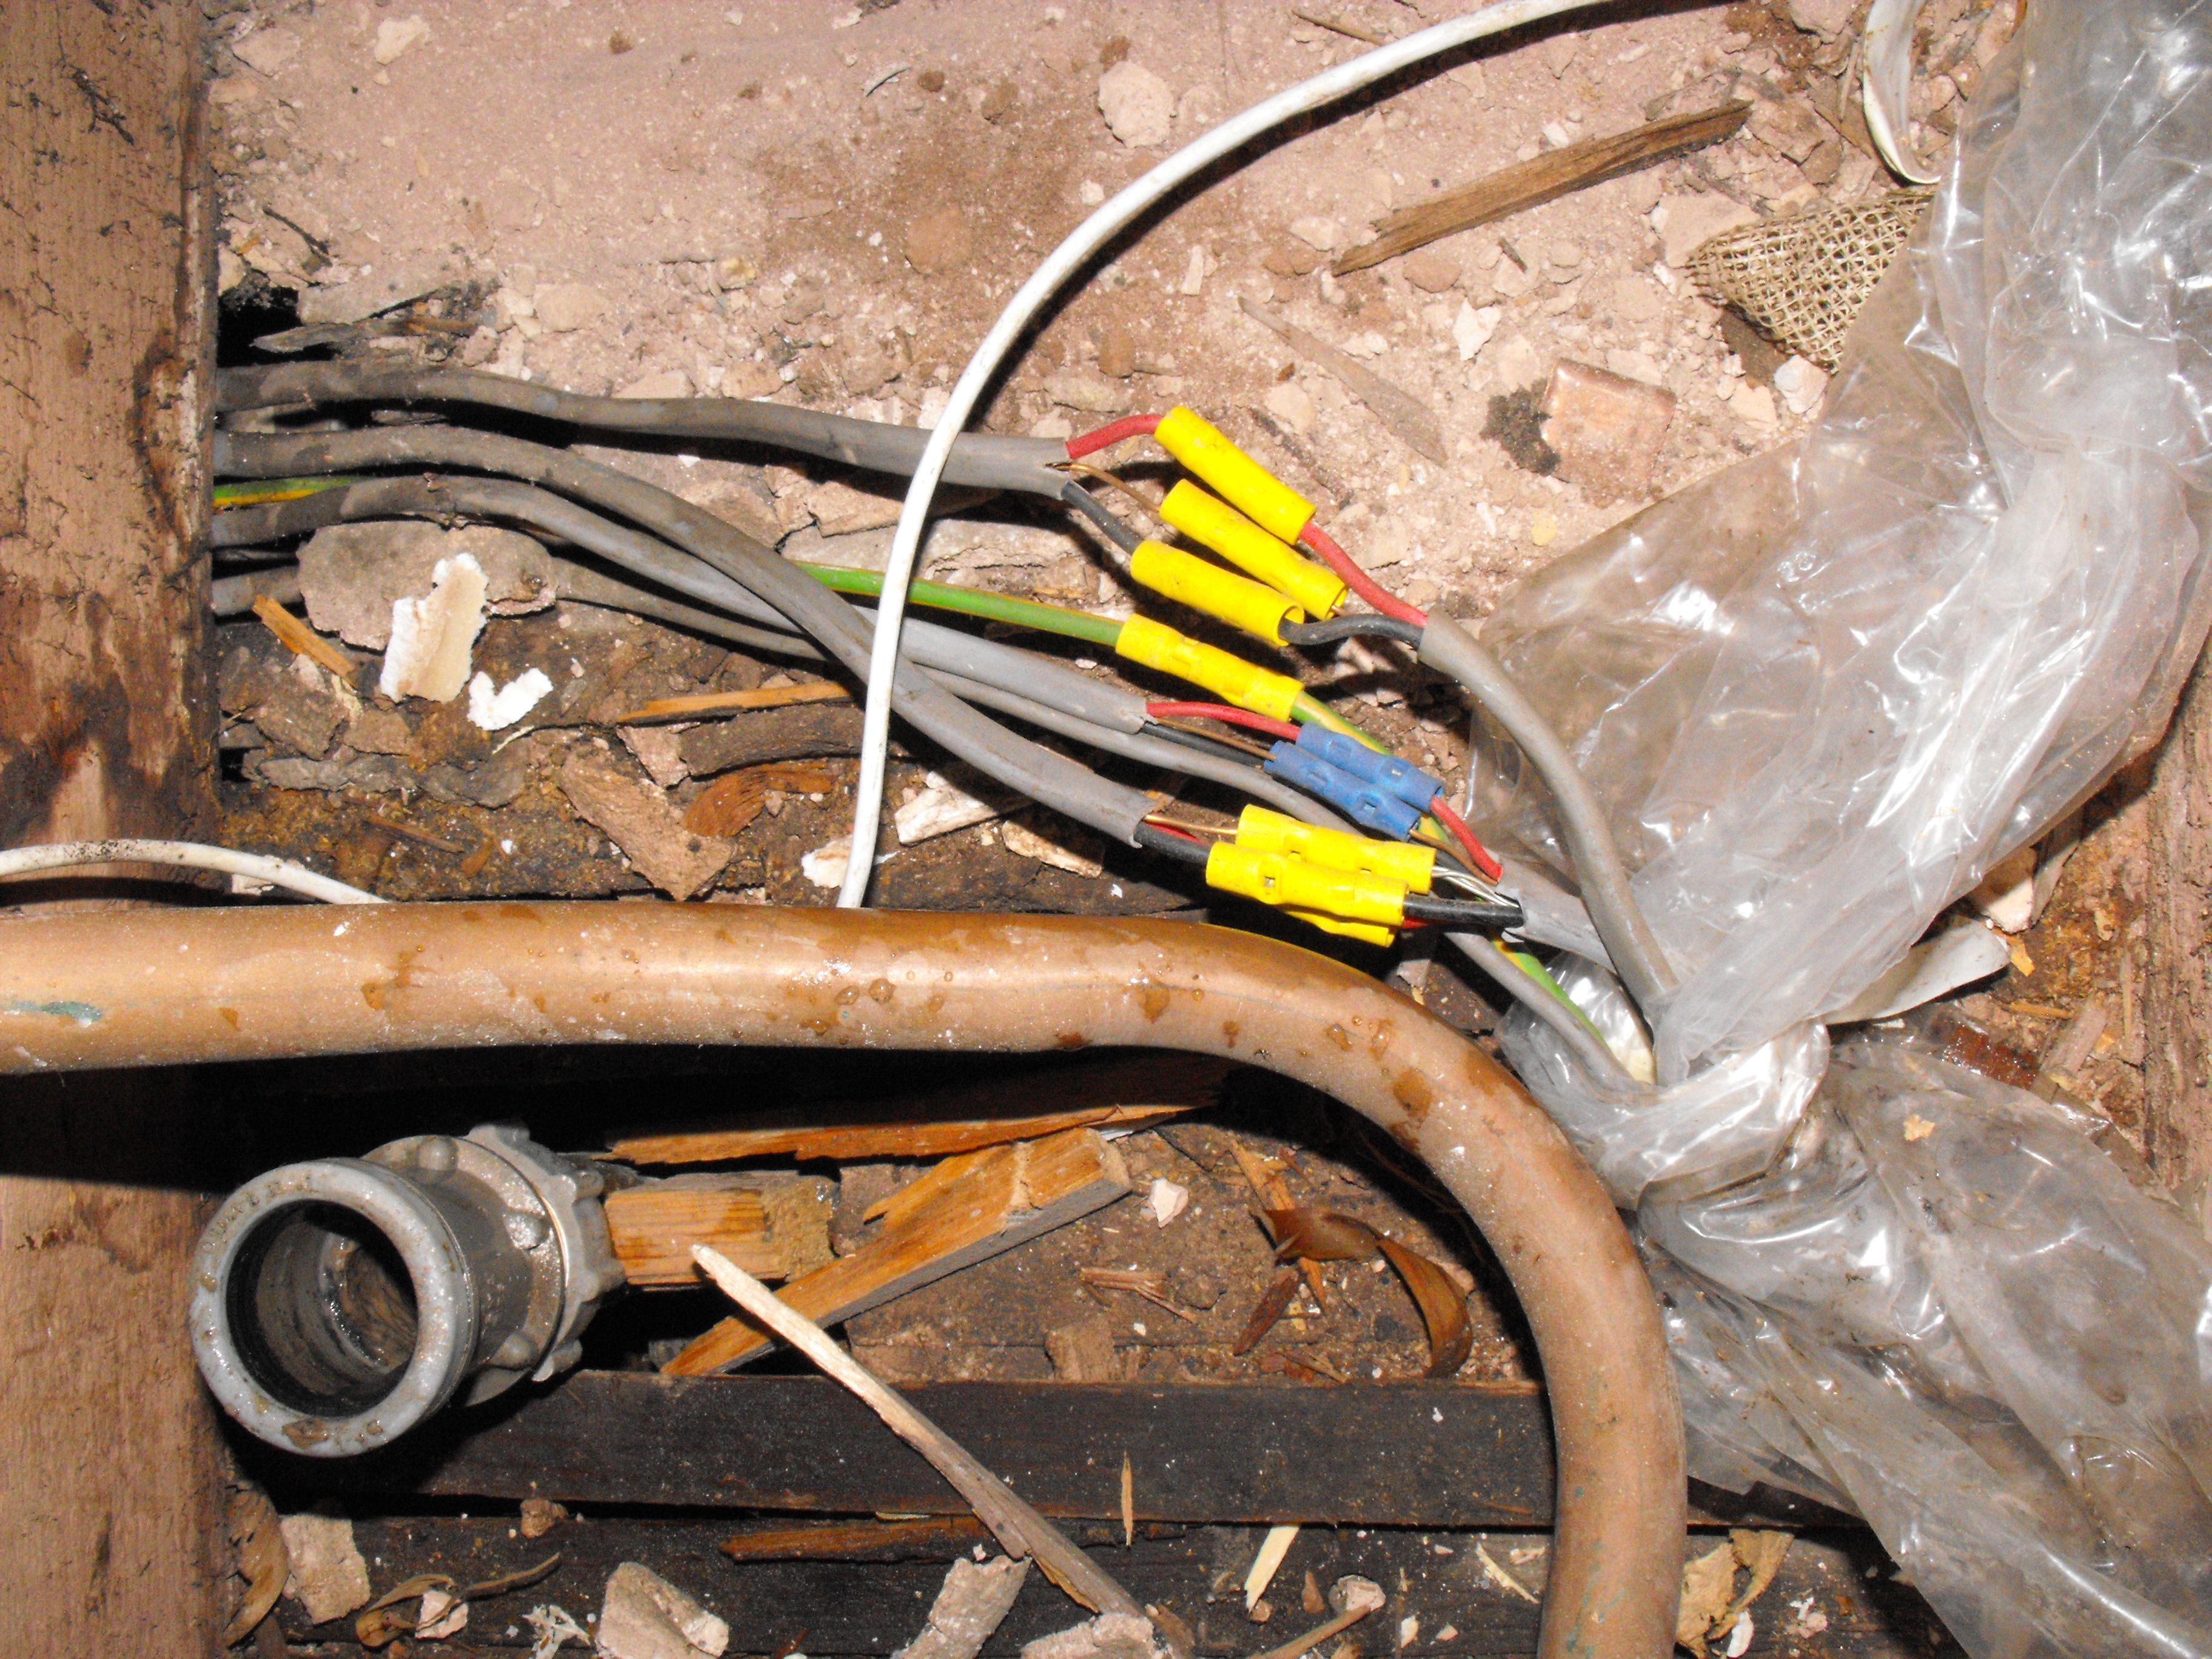 Final Circuits Extended When Consumer Unit Moved Non Compliant Connections Made Without Adequate Protection Quality Work Bathroom Flooring Electrical Cables